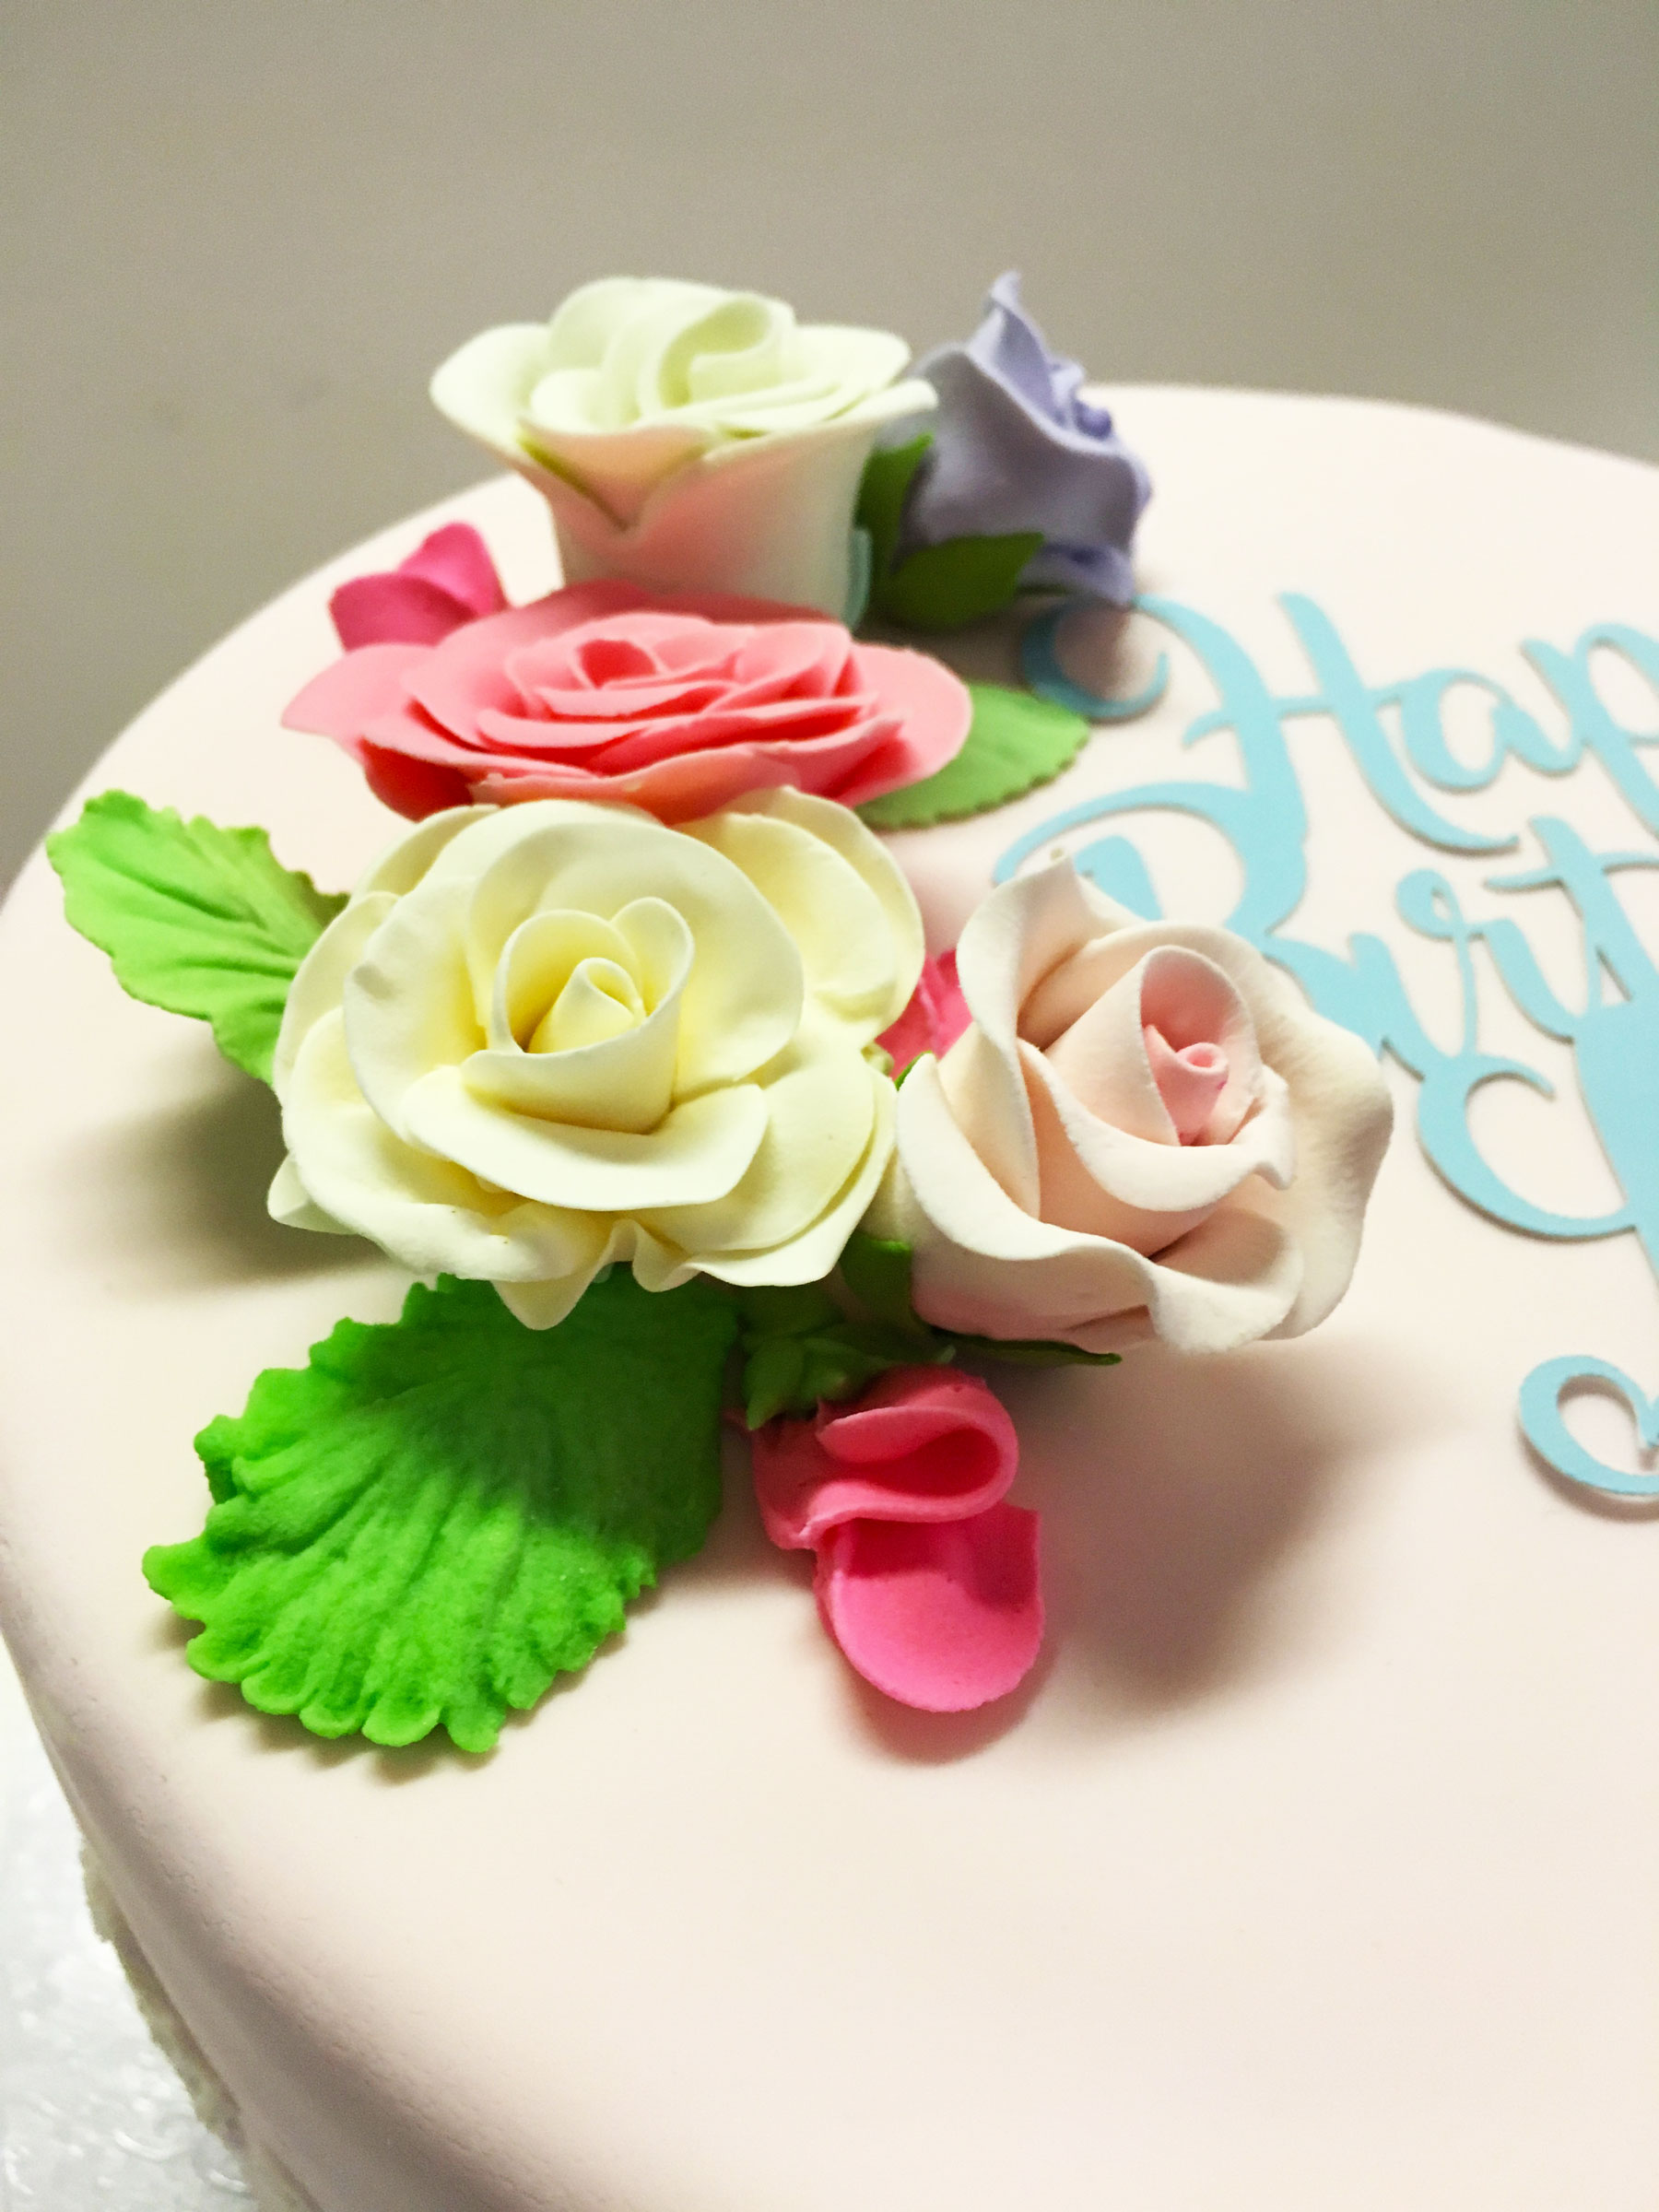 Edible Flowers Cake Icings R Us